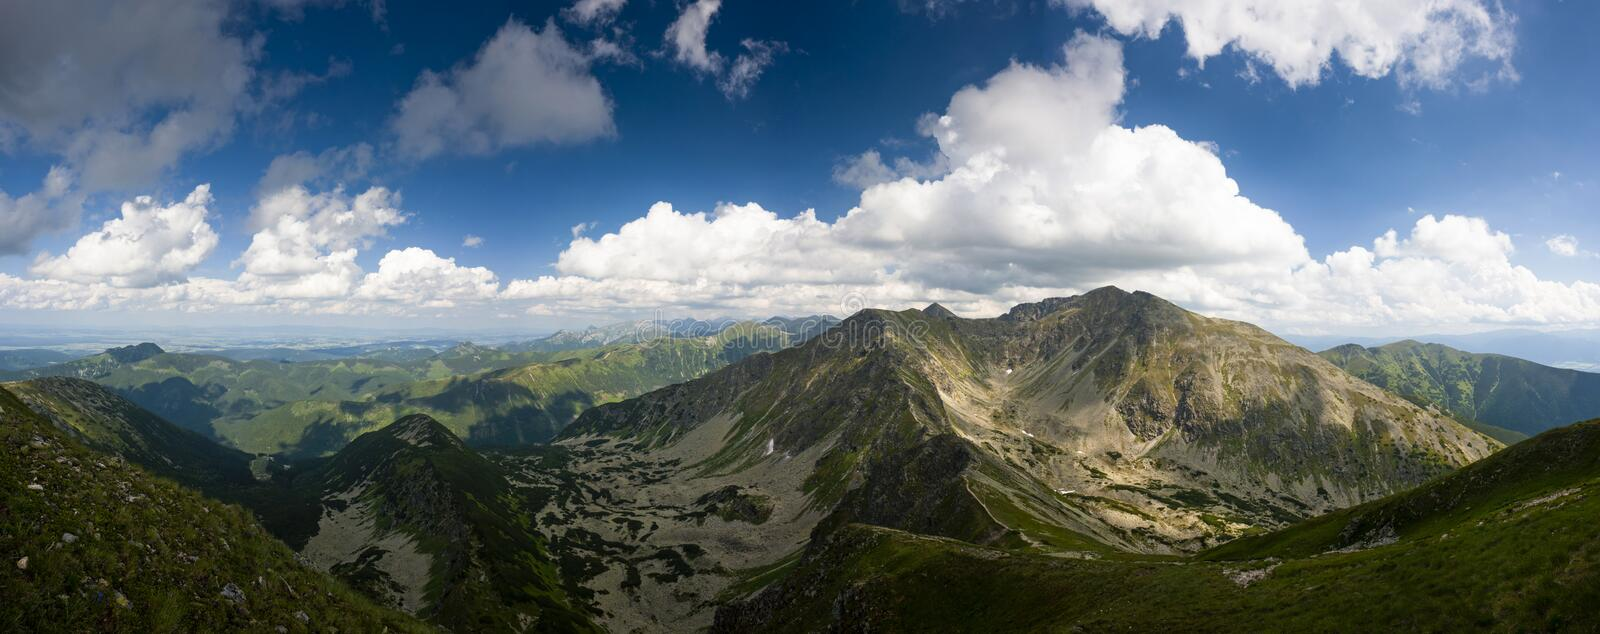 Summer mountains panorama royalty free stock images